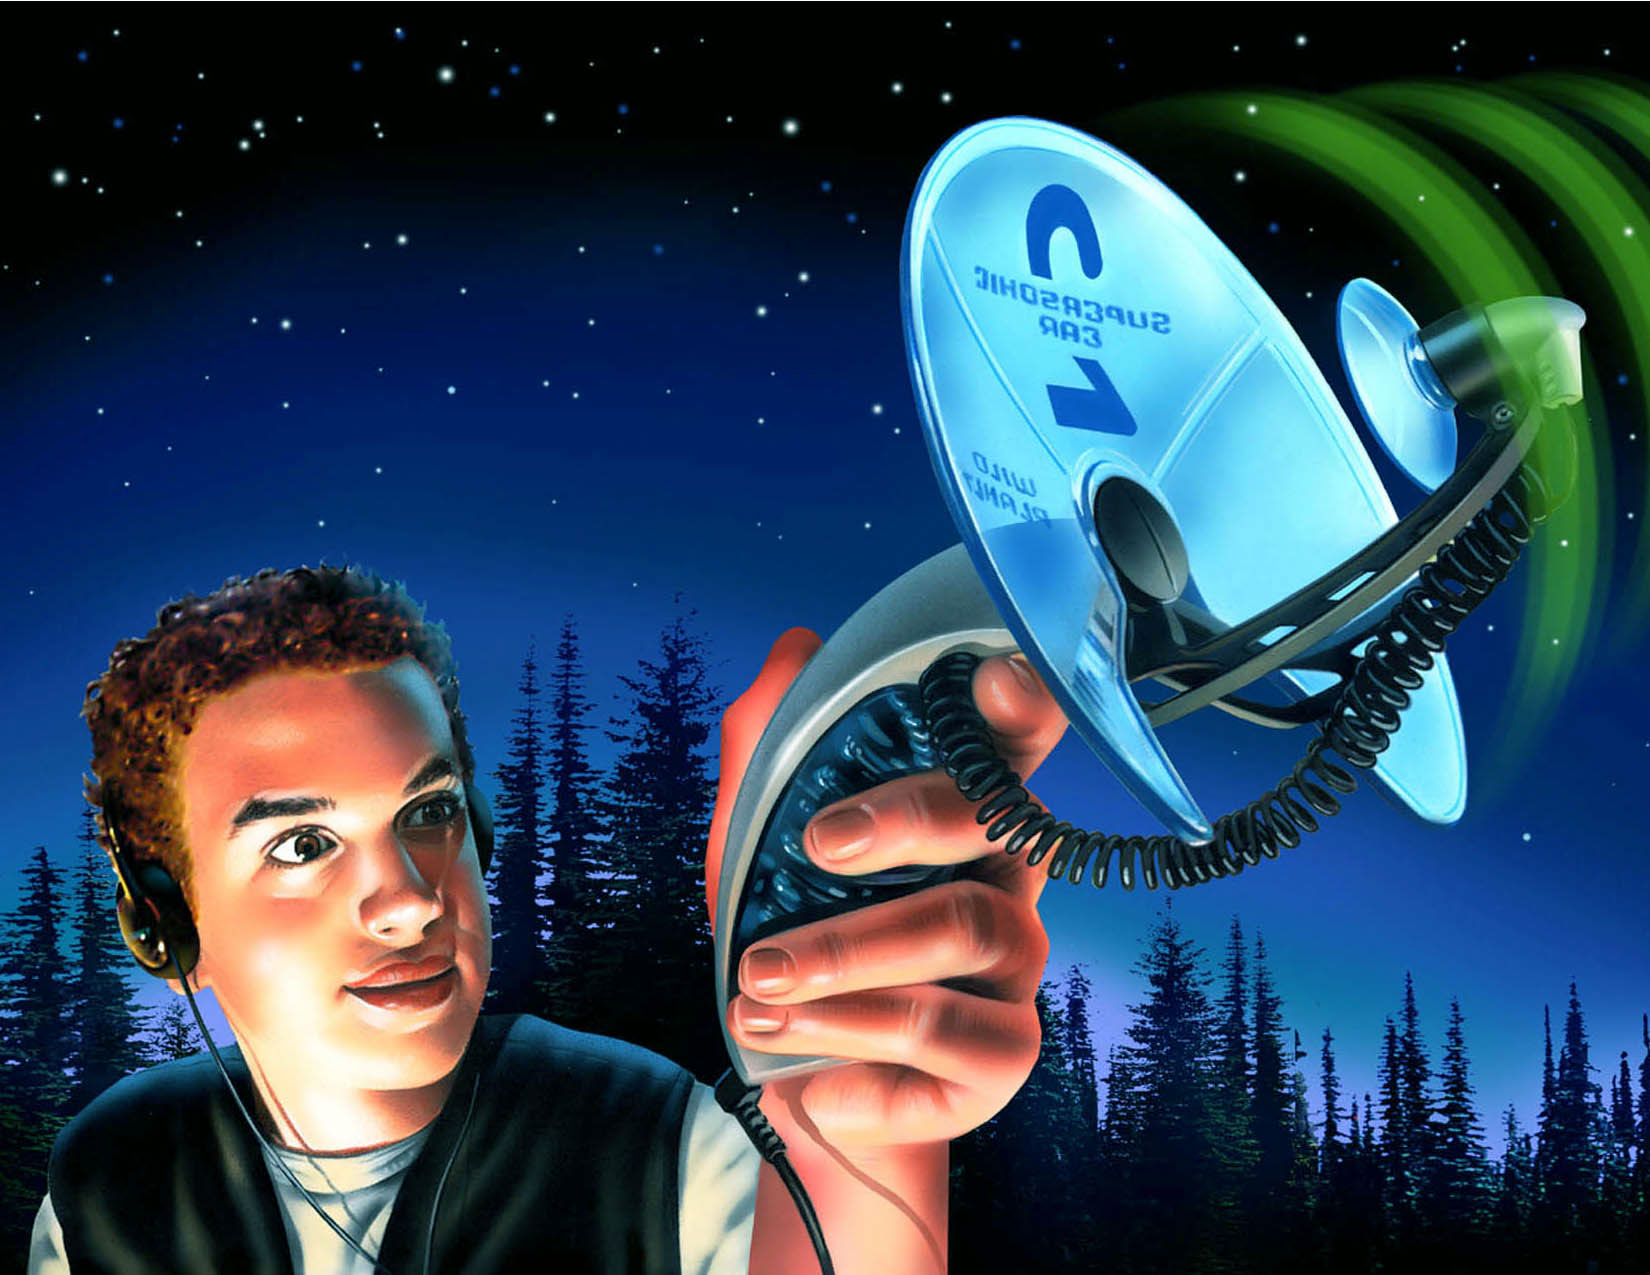 illustration-People_Boy using supersonic ear outside at night-Impressa